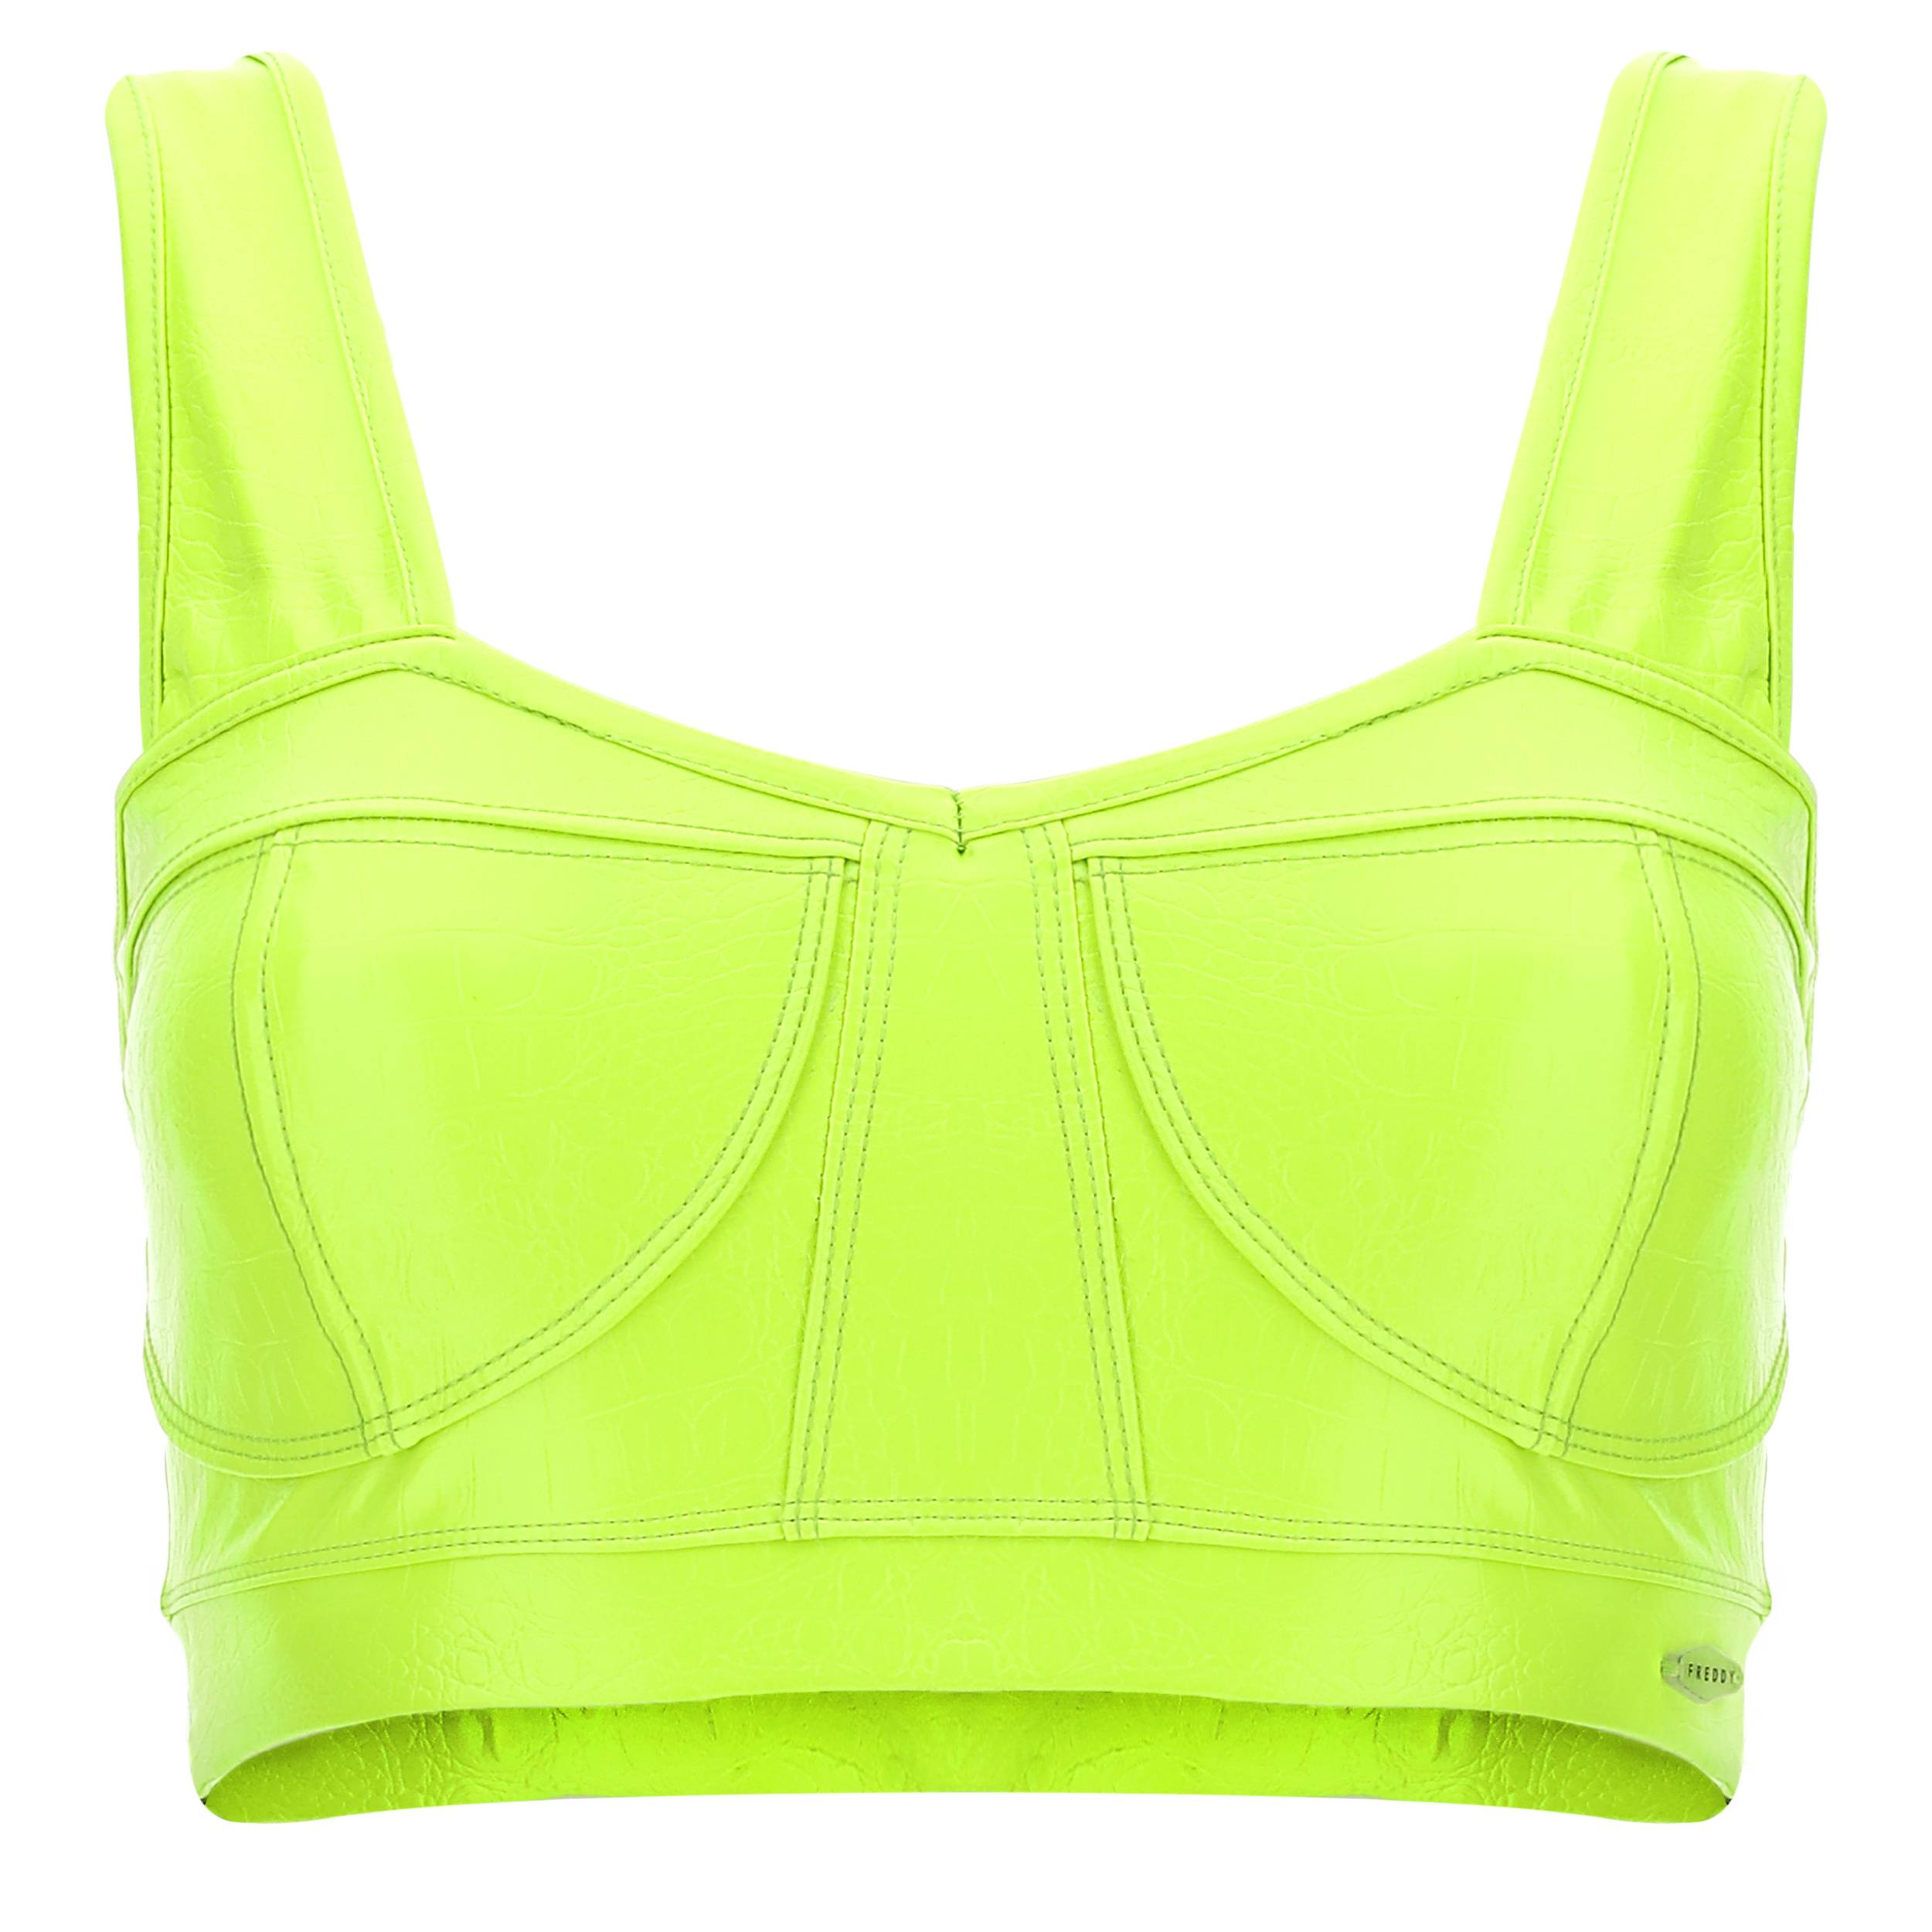 Freddy Corpetto in ecopelle lime effetto cocco Verde Lime